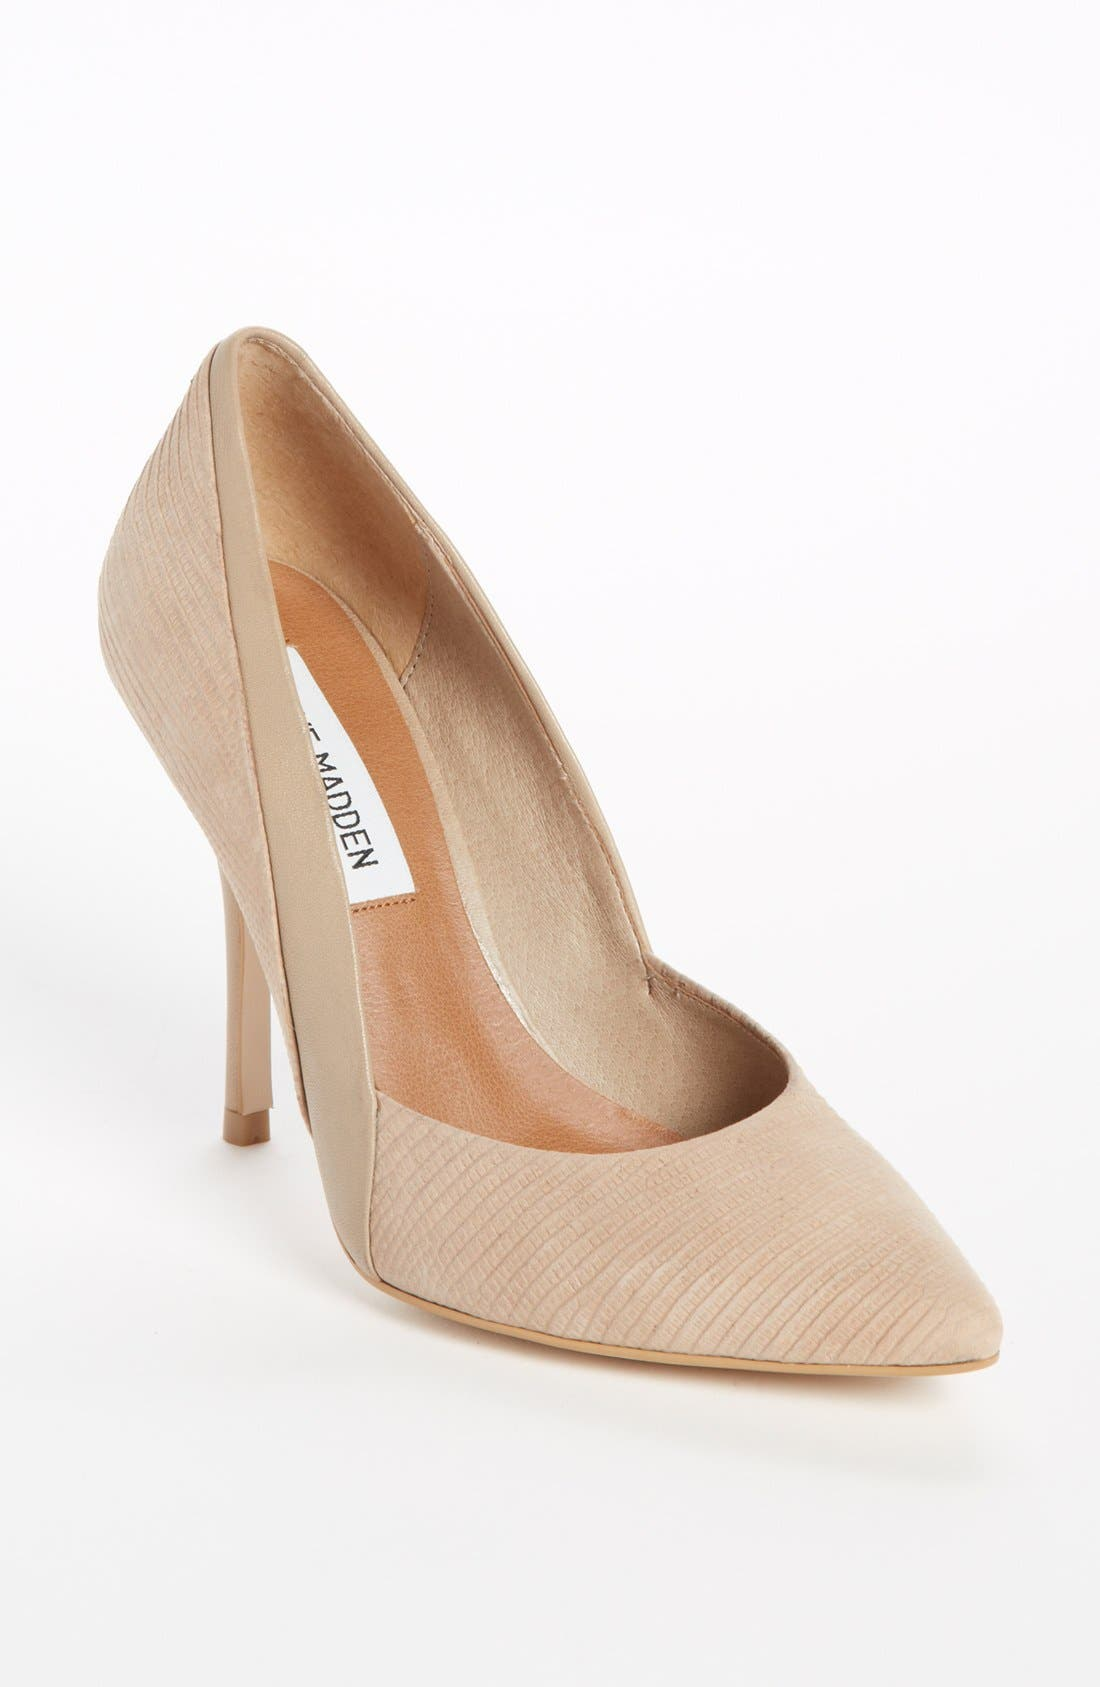 Alternate Image 1 Selected - Steve Madden 'Clydee' Pump